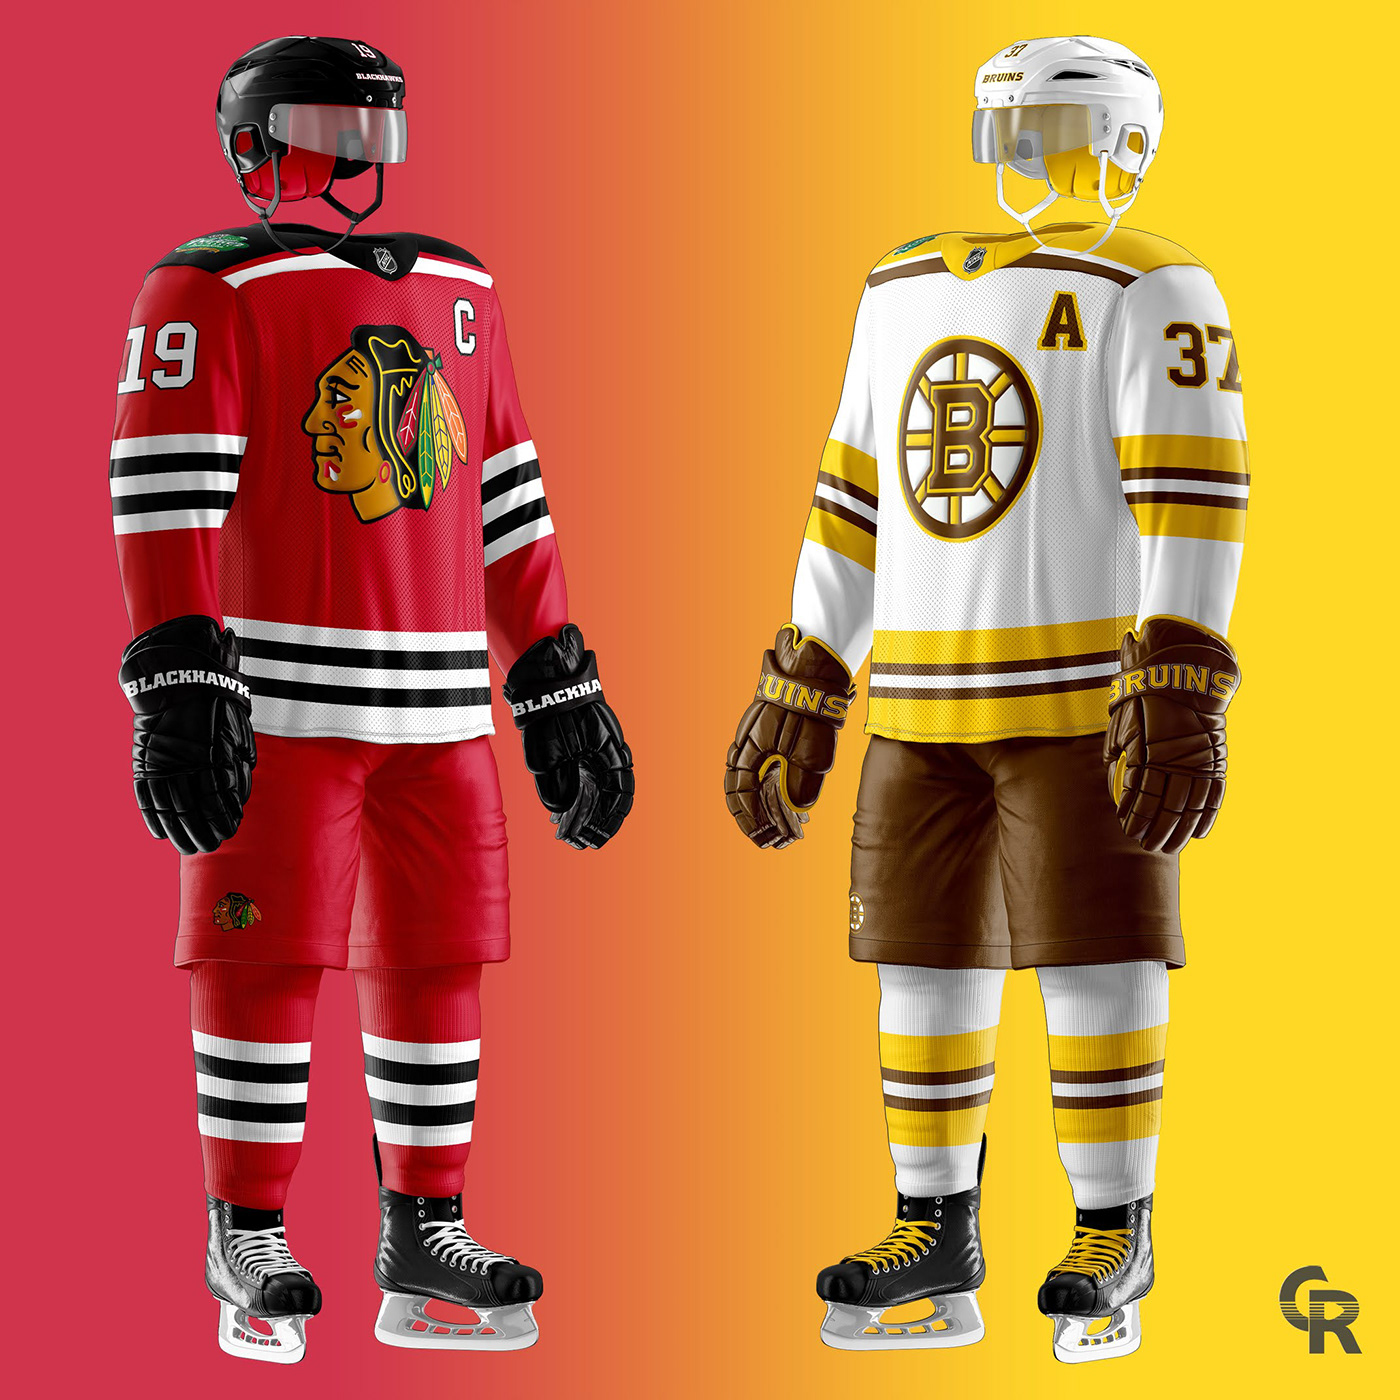 Blackhawks-Bruins Winter Classic Concept on Behance ff89478aeb8